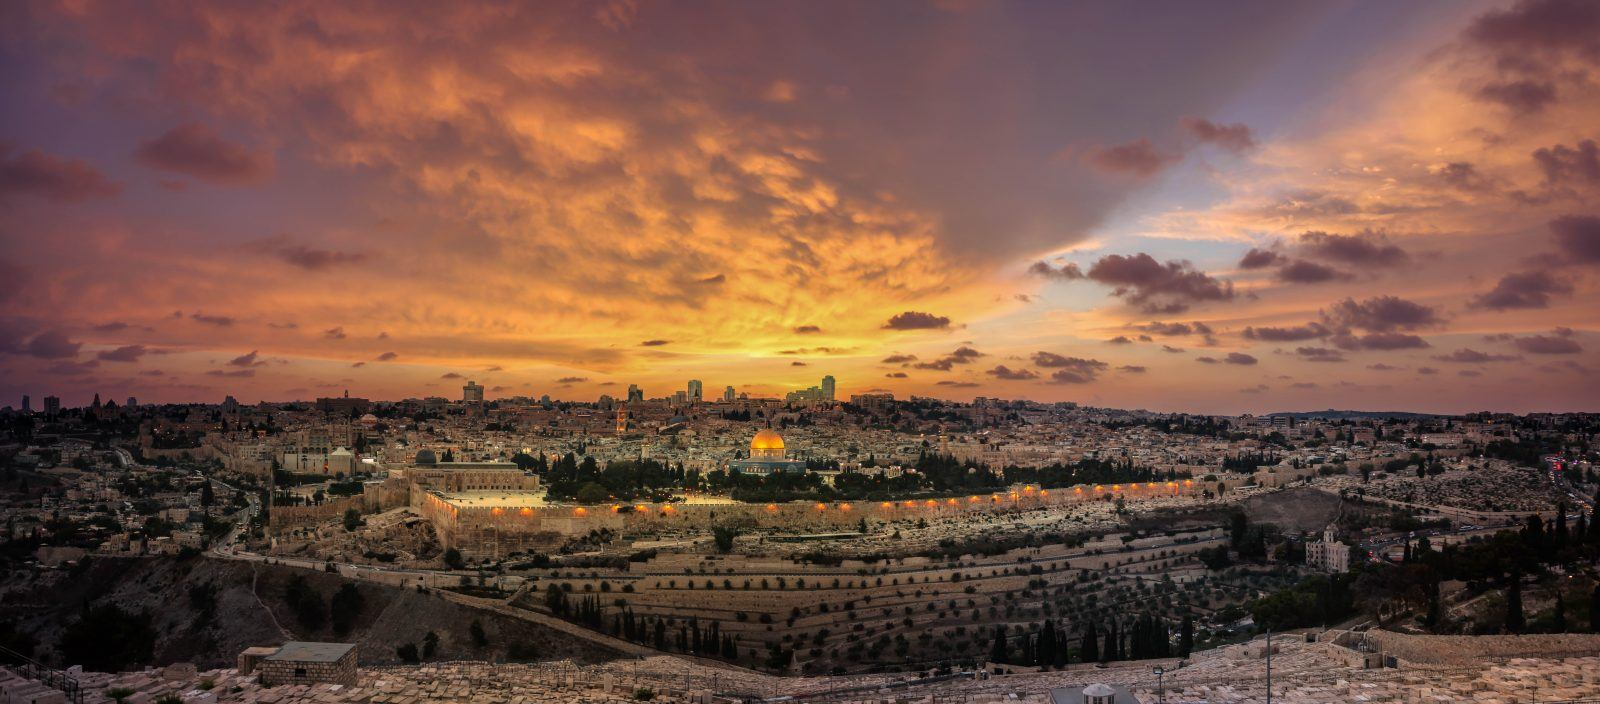 The Holy Land: Past Present and Future